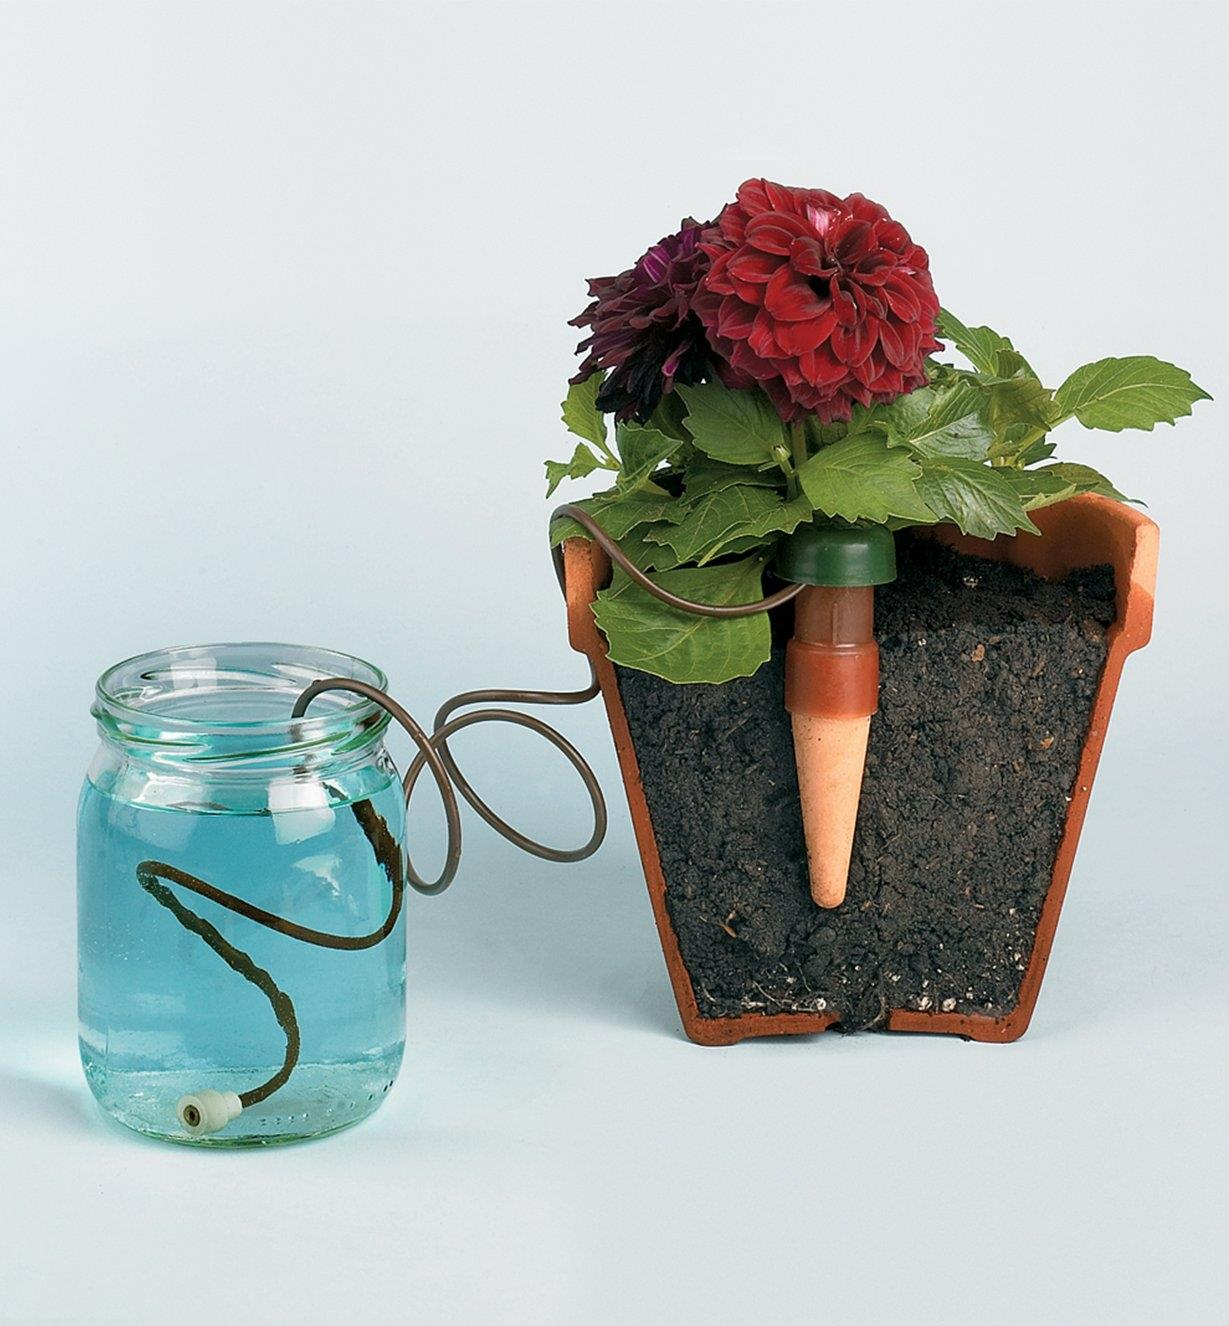 Cutaway view of an automatic Plant Waterer inserted in a plant pot with hose placed in a jar of water